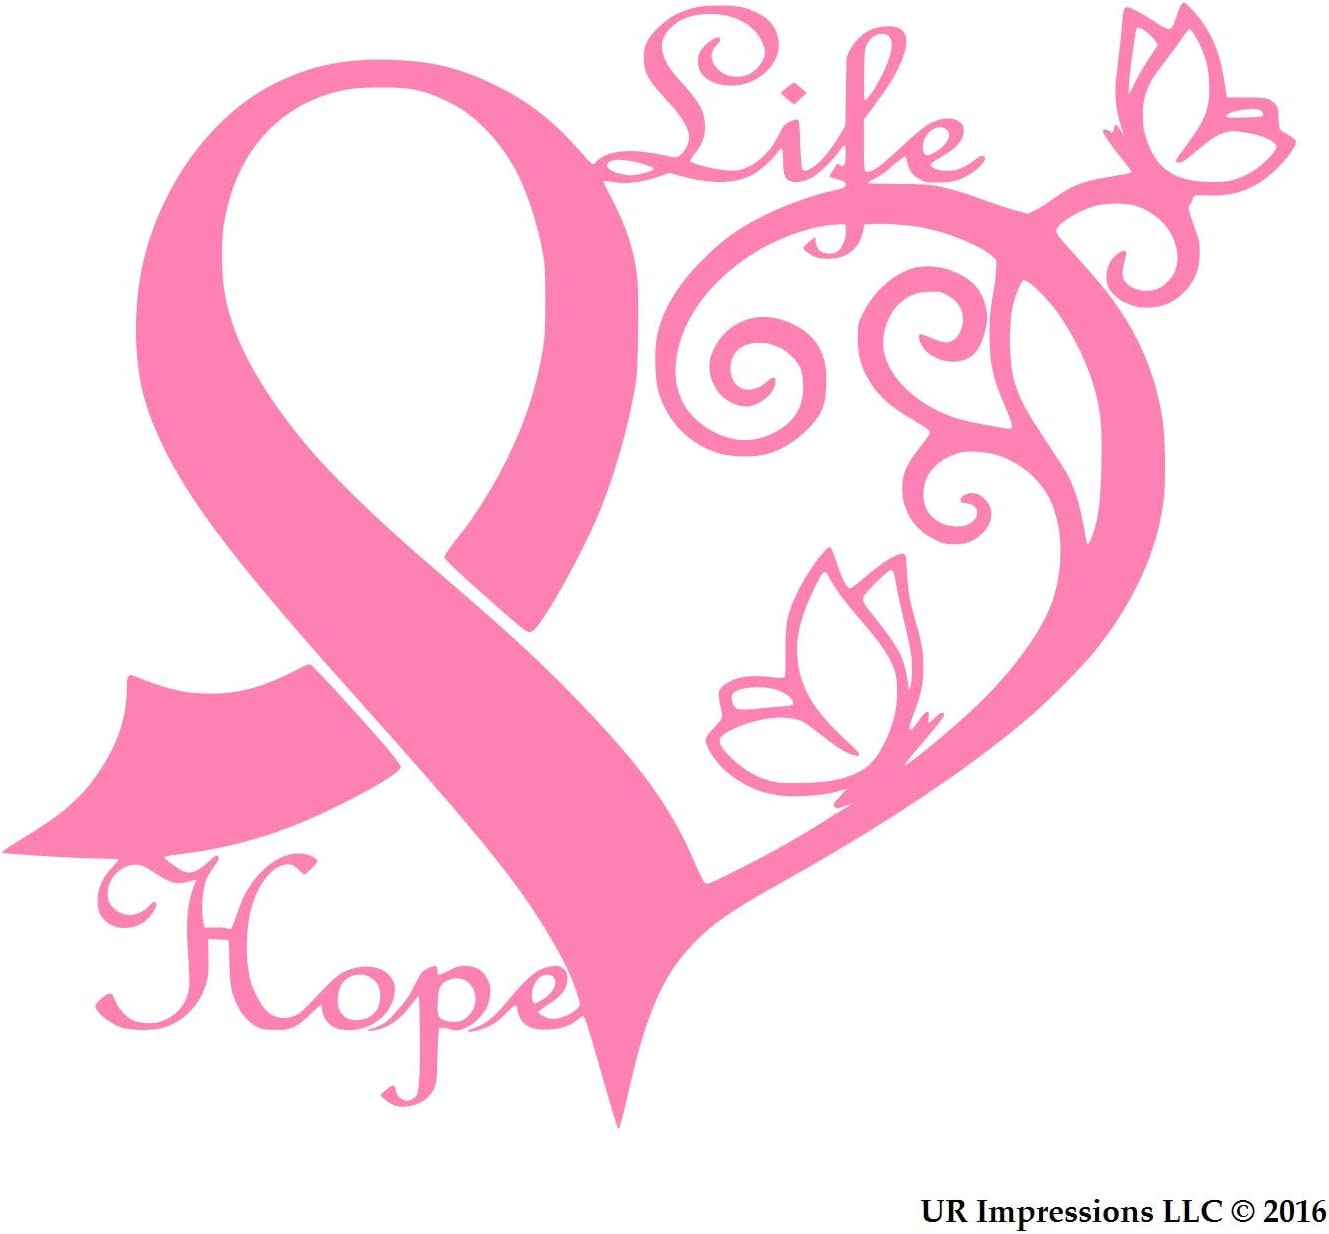 UR Impressions Pnk Cancer Awareness Ribbon Heart Butterfly Vine - Life Hope Decal Vinyl Sticker Graphics for Car Truck SUV Van Wall Window Laptop|Pink|6.4 X 5.5 Inch|URI275